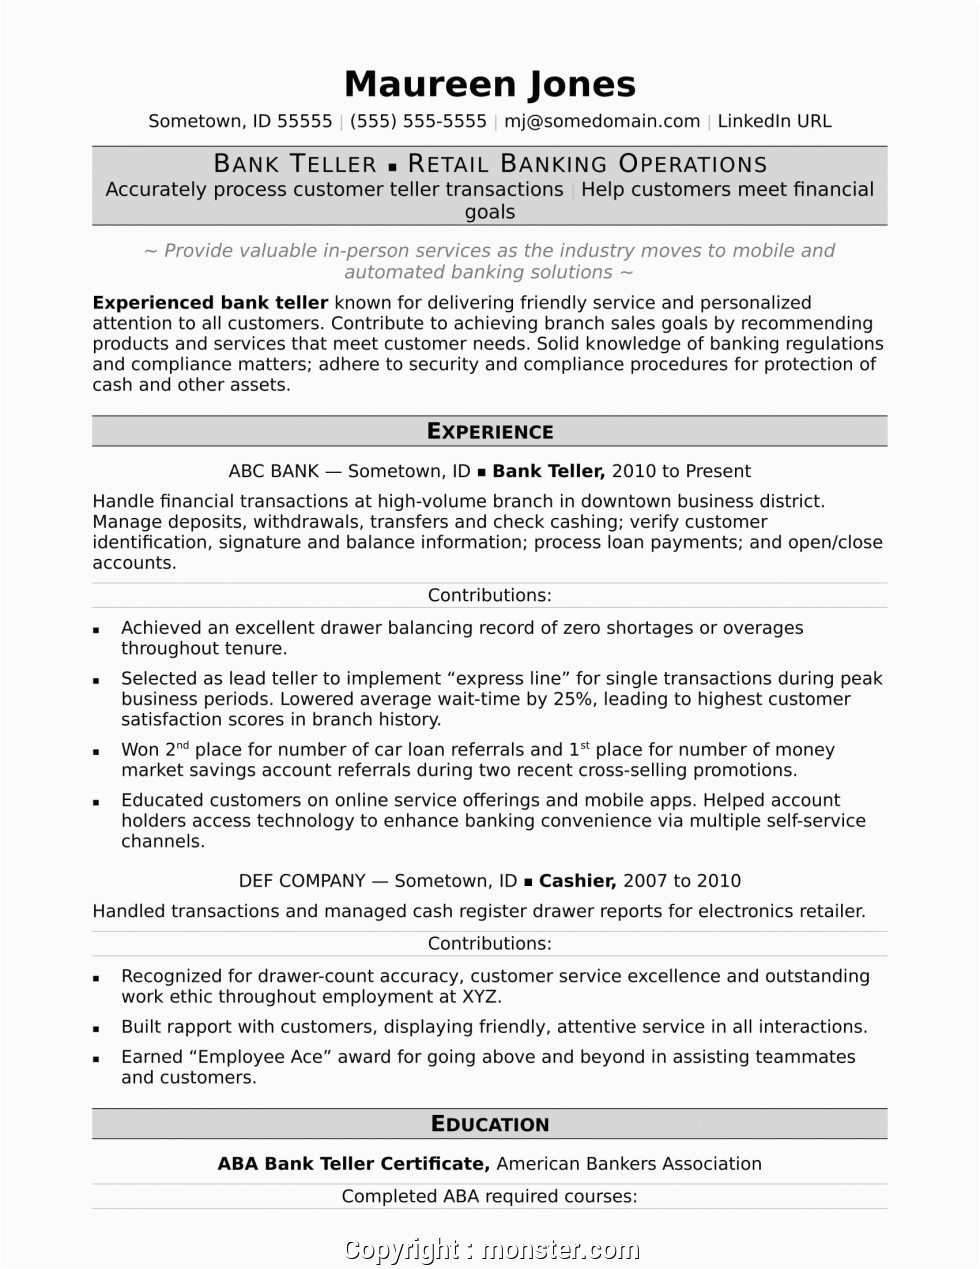 new banking operations resume samples